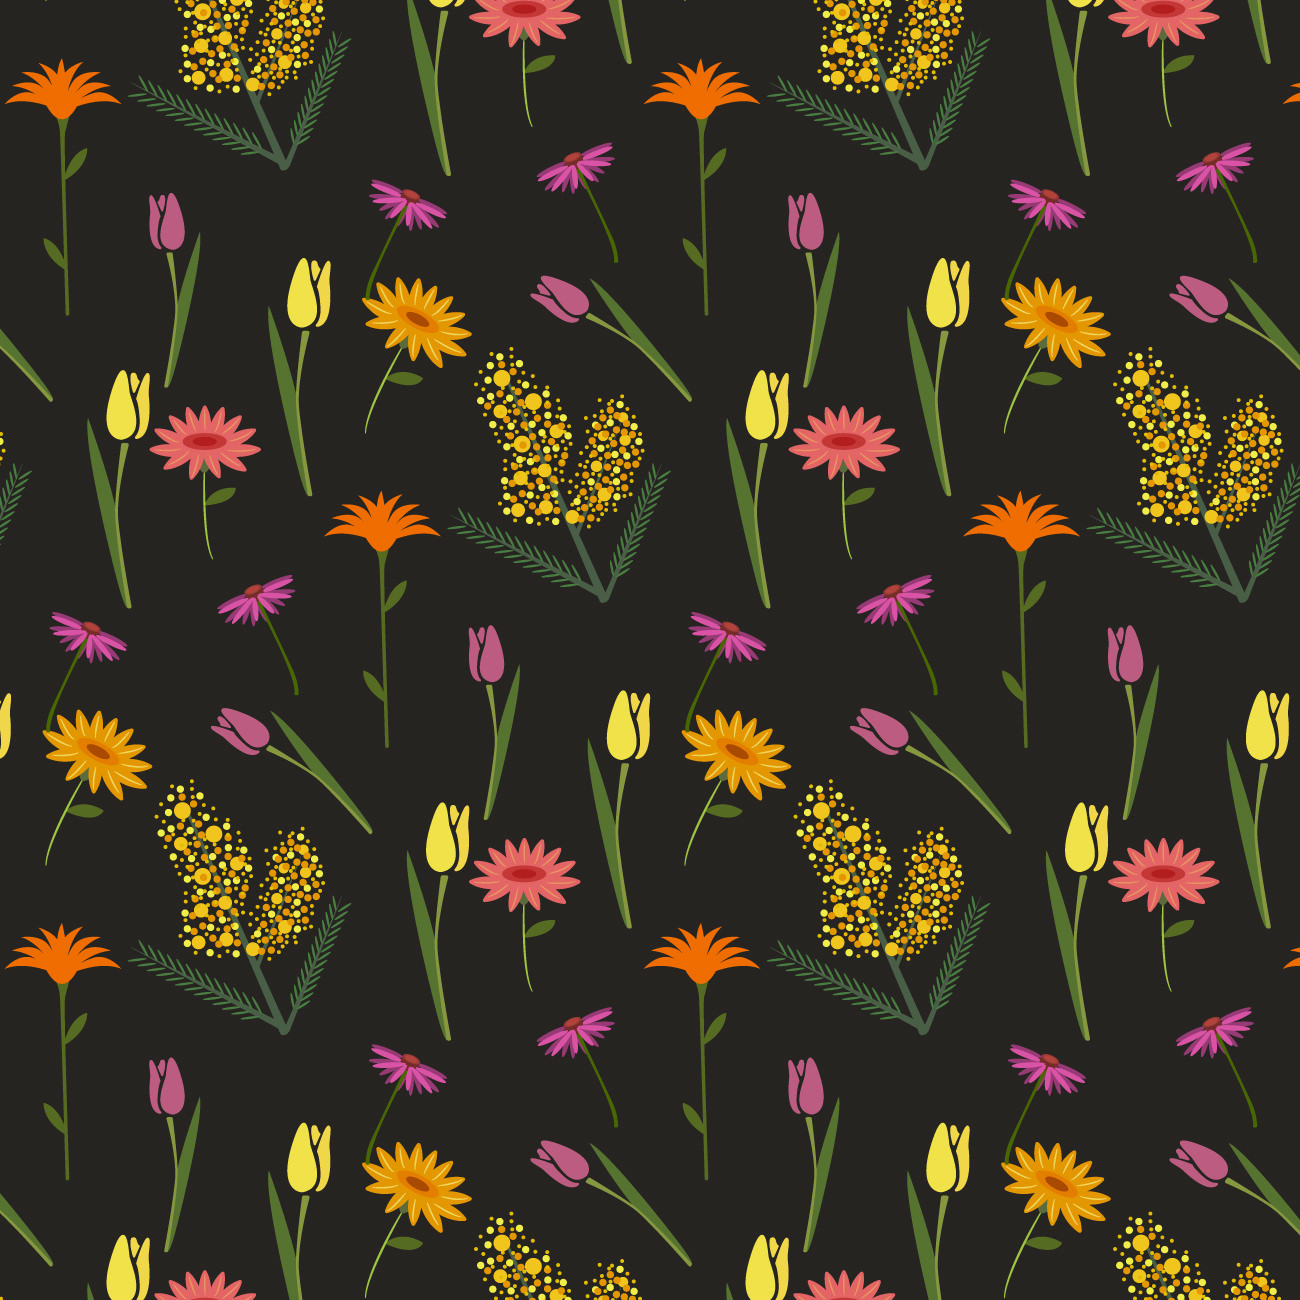 Dark Flower Pattern for Free Download